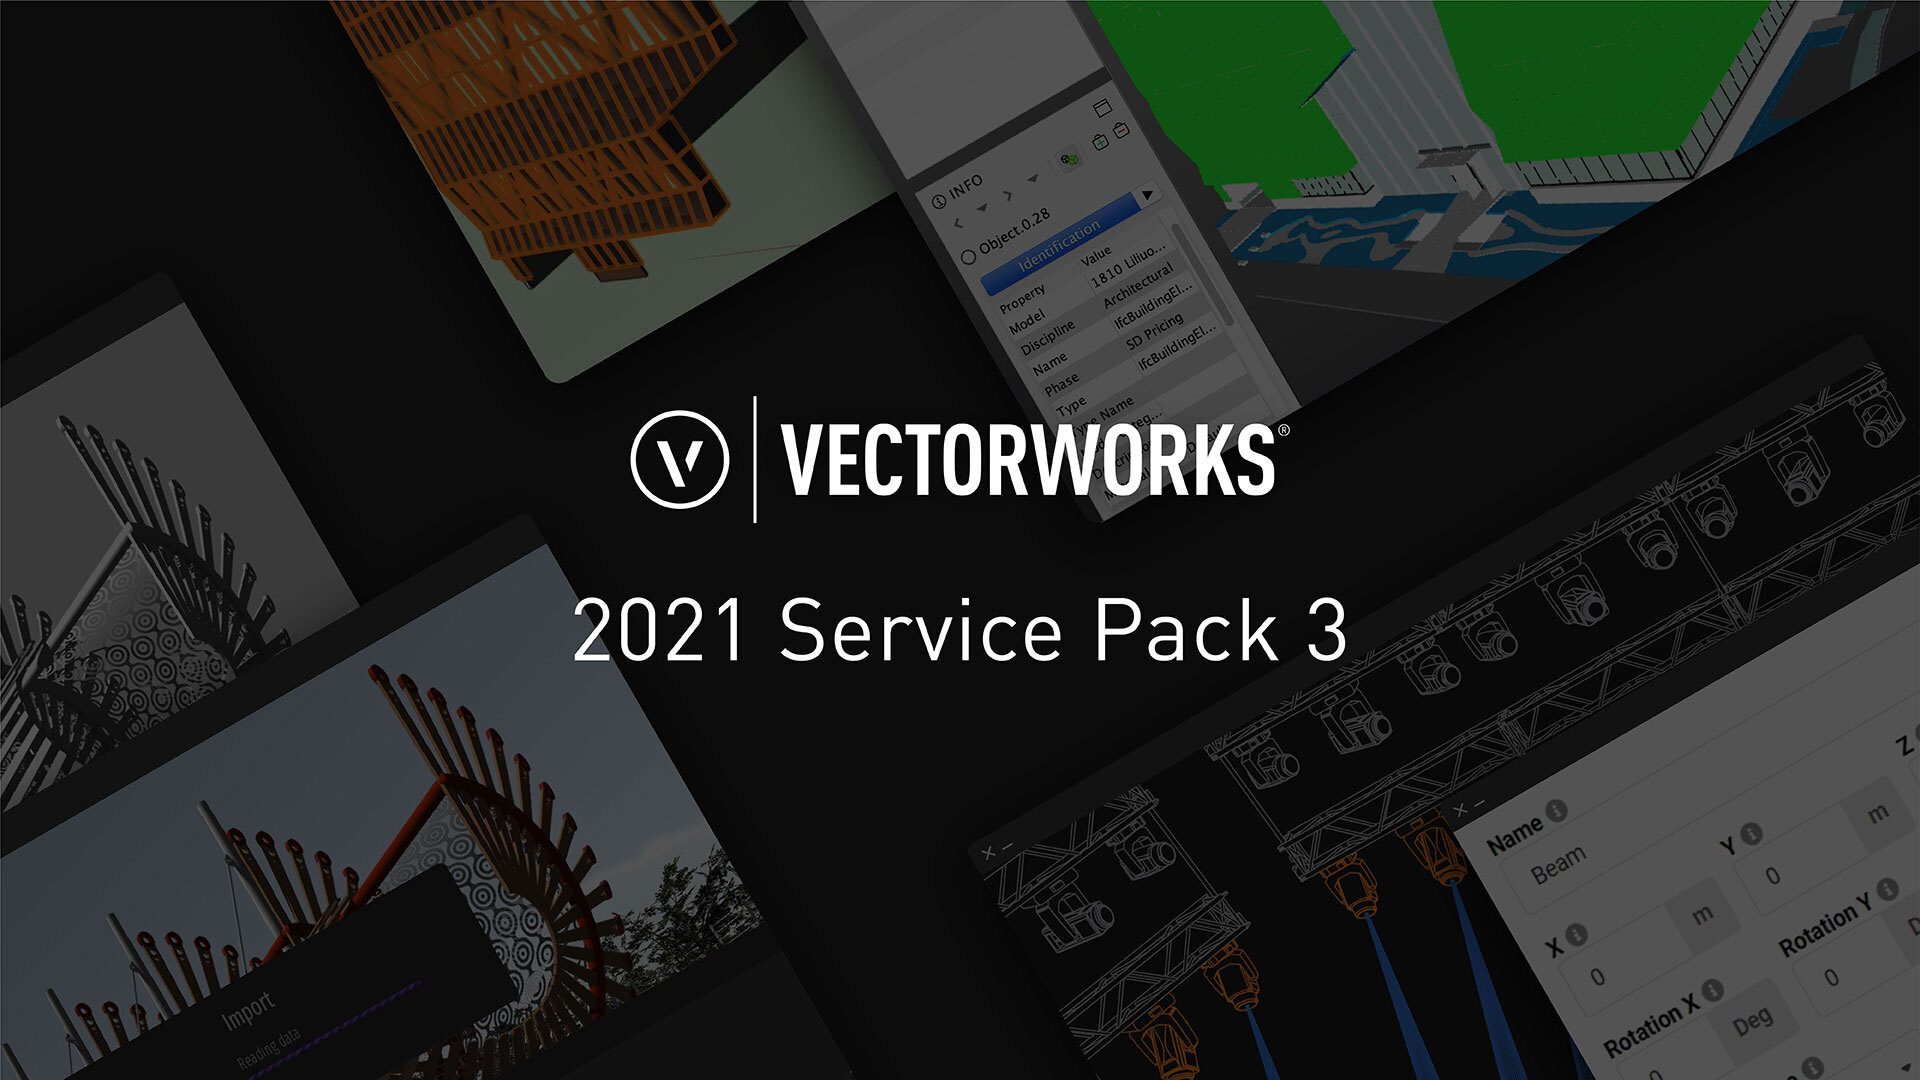 2021 Service Pack 3 (Photo: Vectorworks)